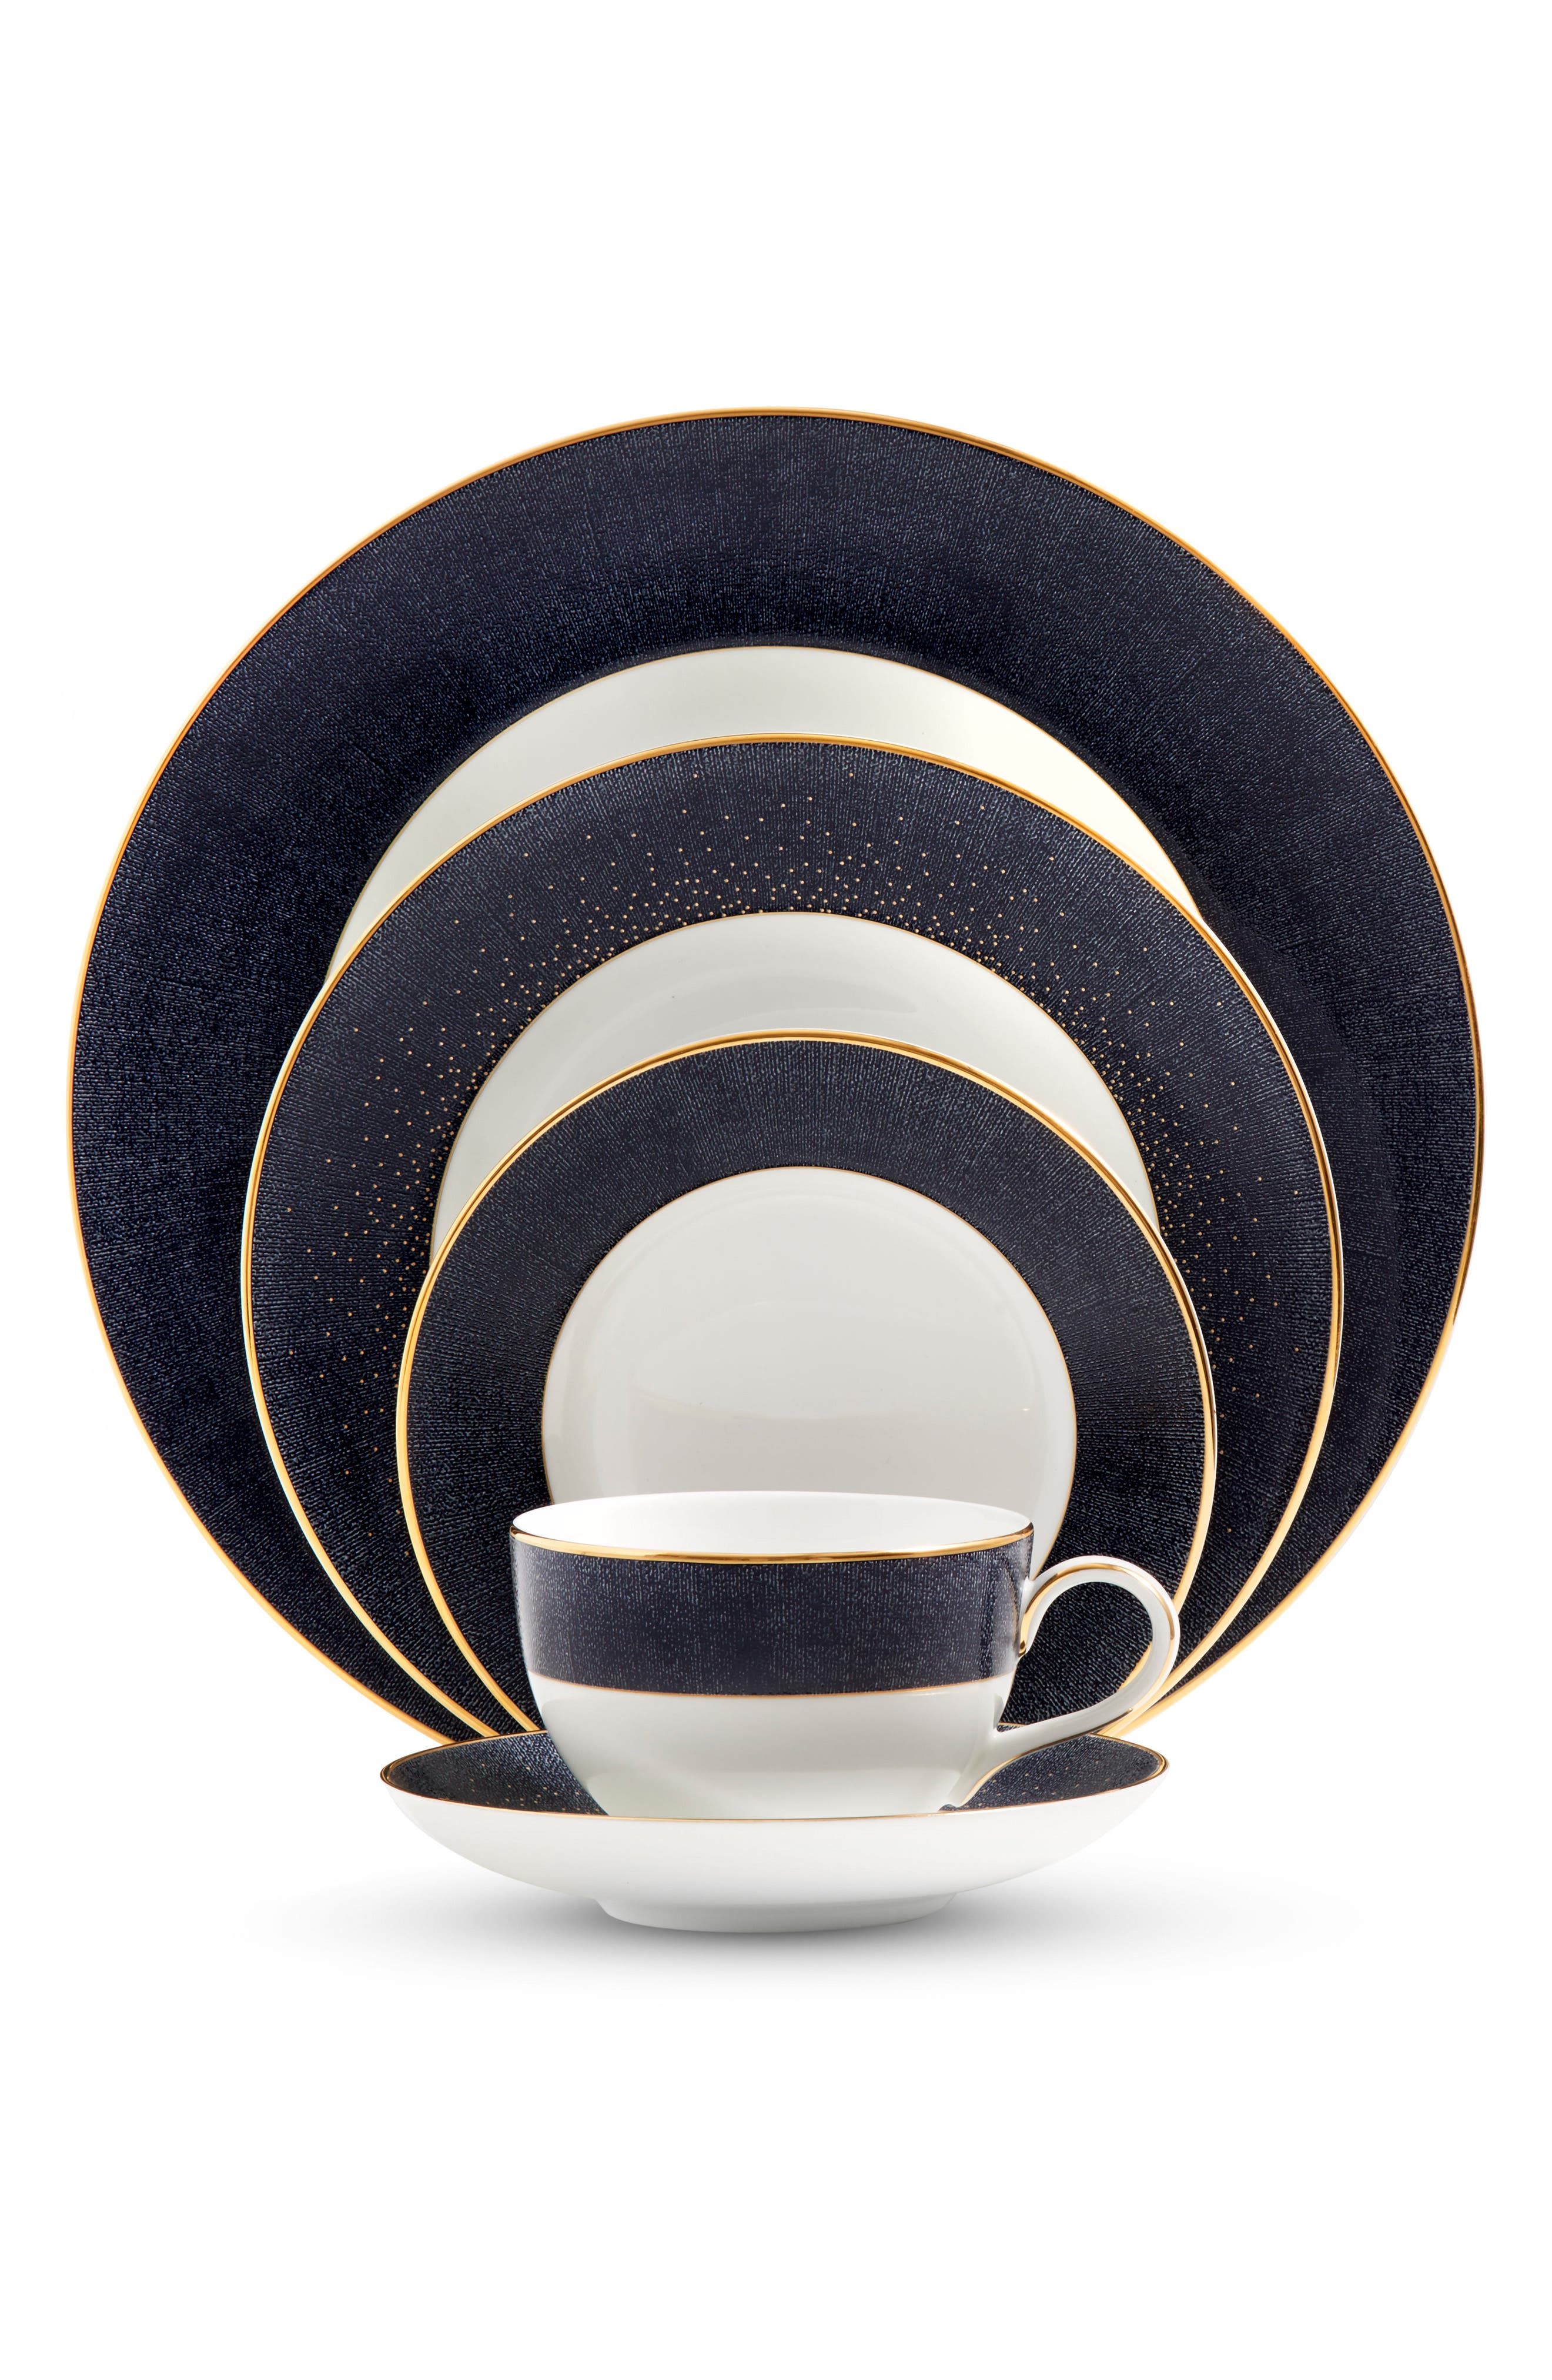 Monique Lhuillier Waterford Stardust Night 5-Piece Bone China Dinnerware Place Setting